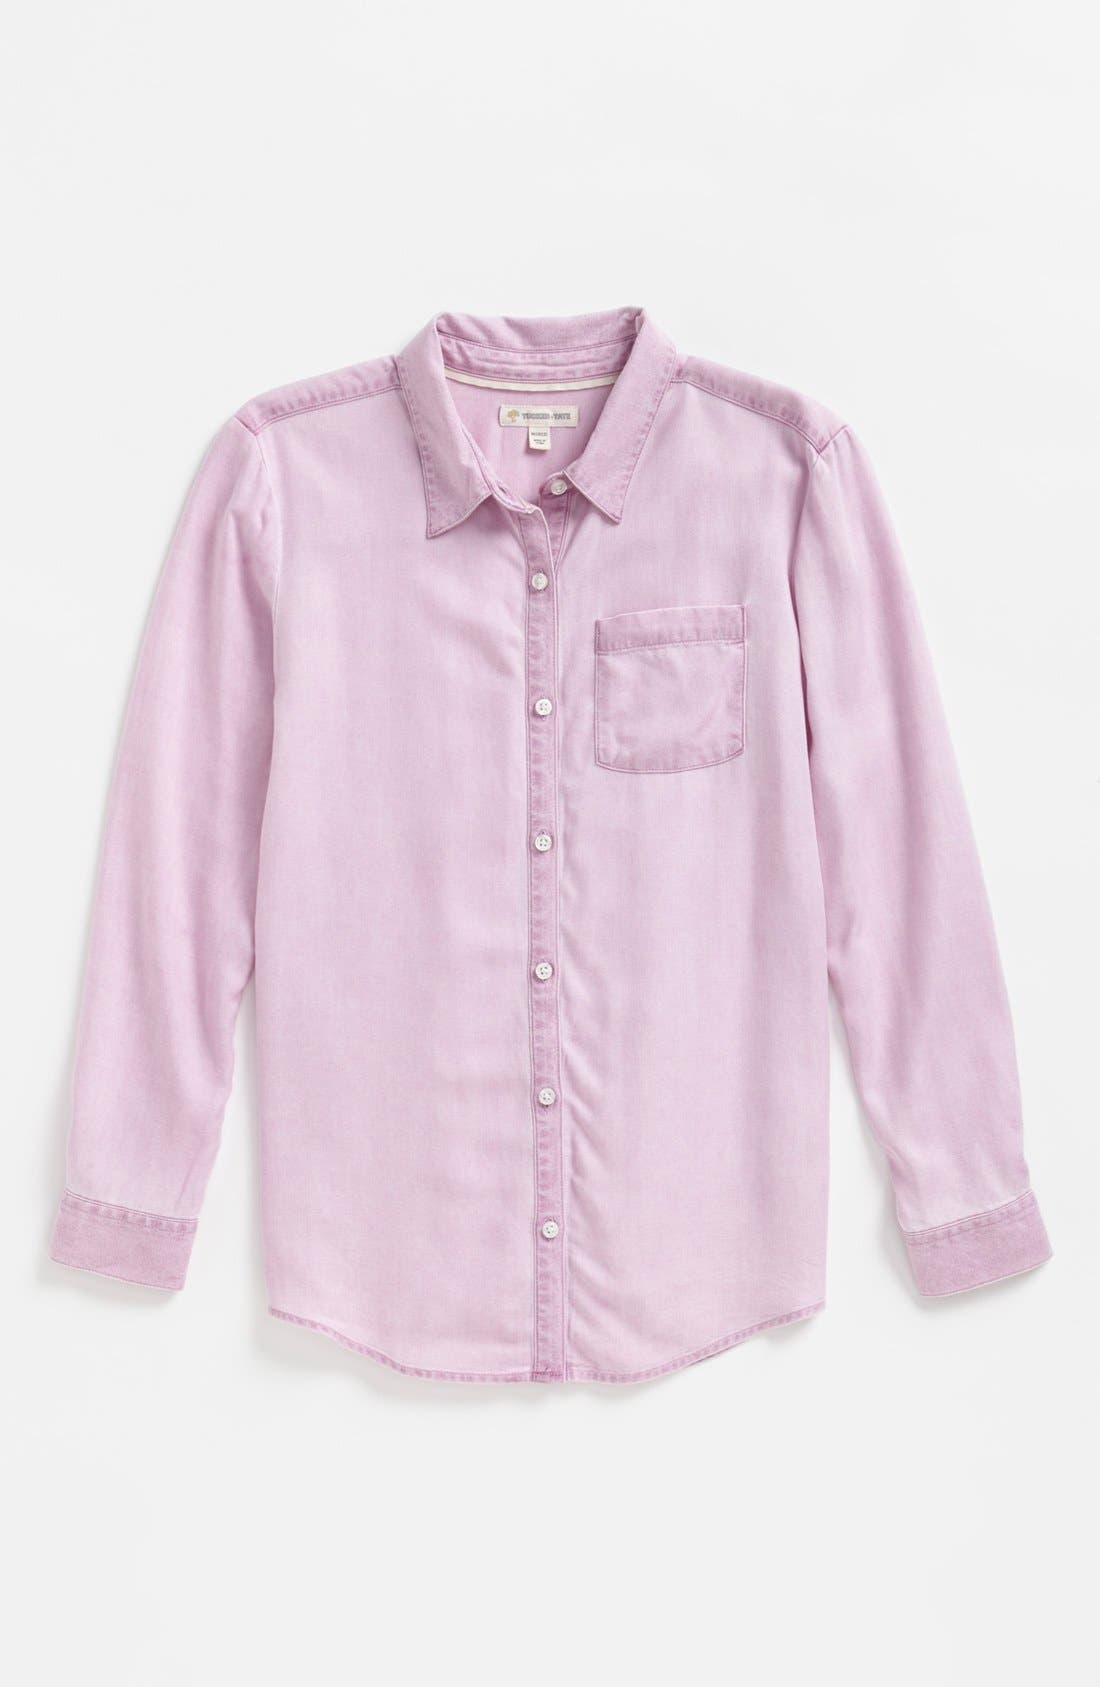 Alternate Image 1 Selected - Tucker + Tate 'Nikki' Button Down Top (Big Girls)